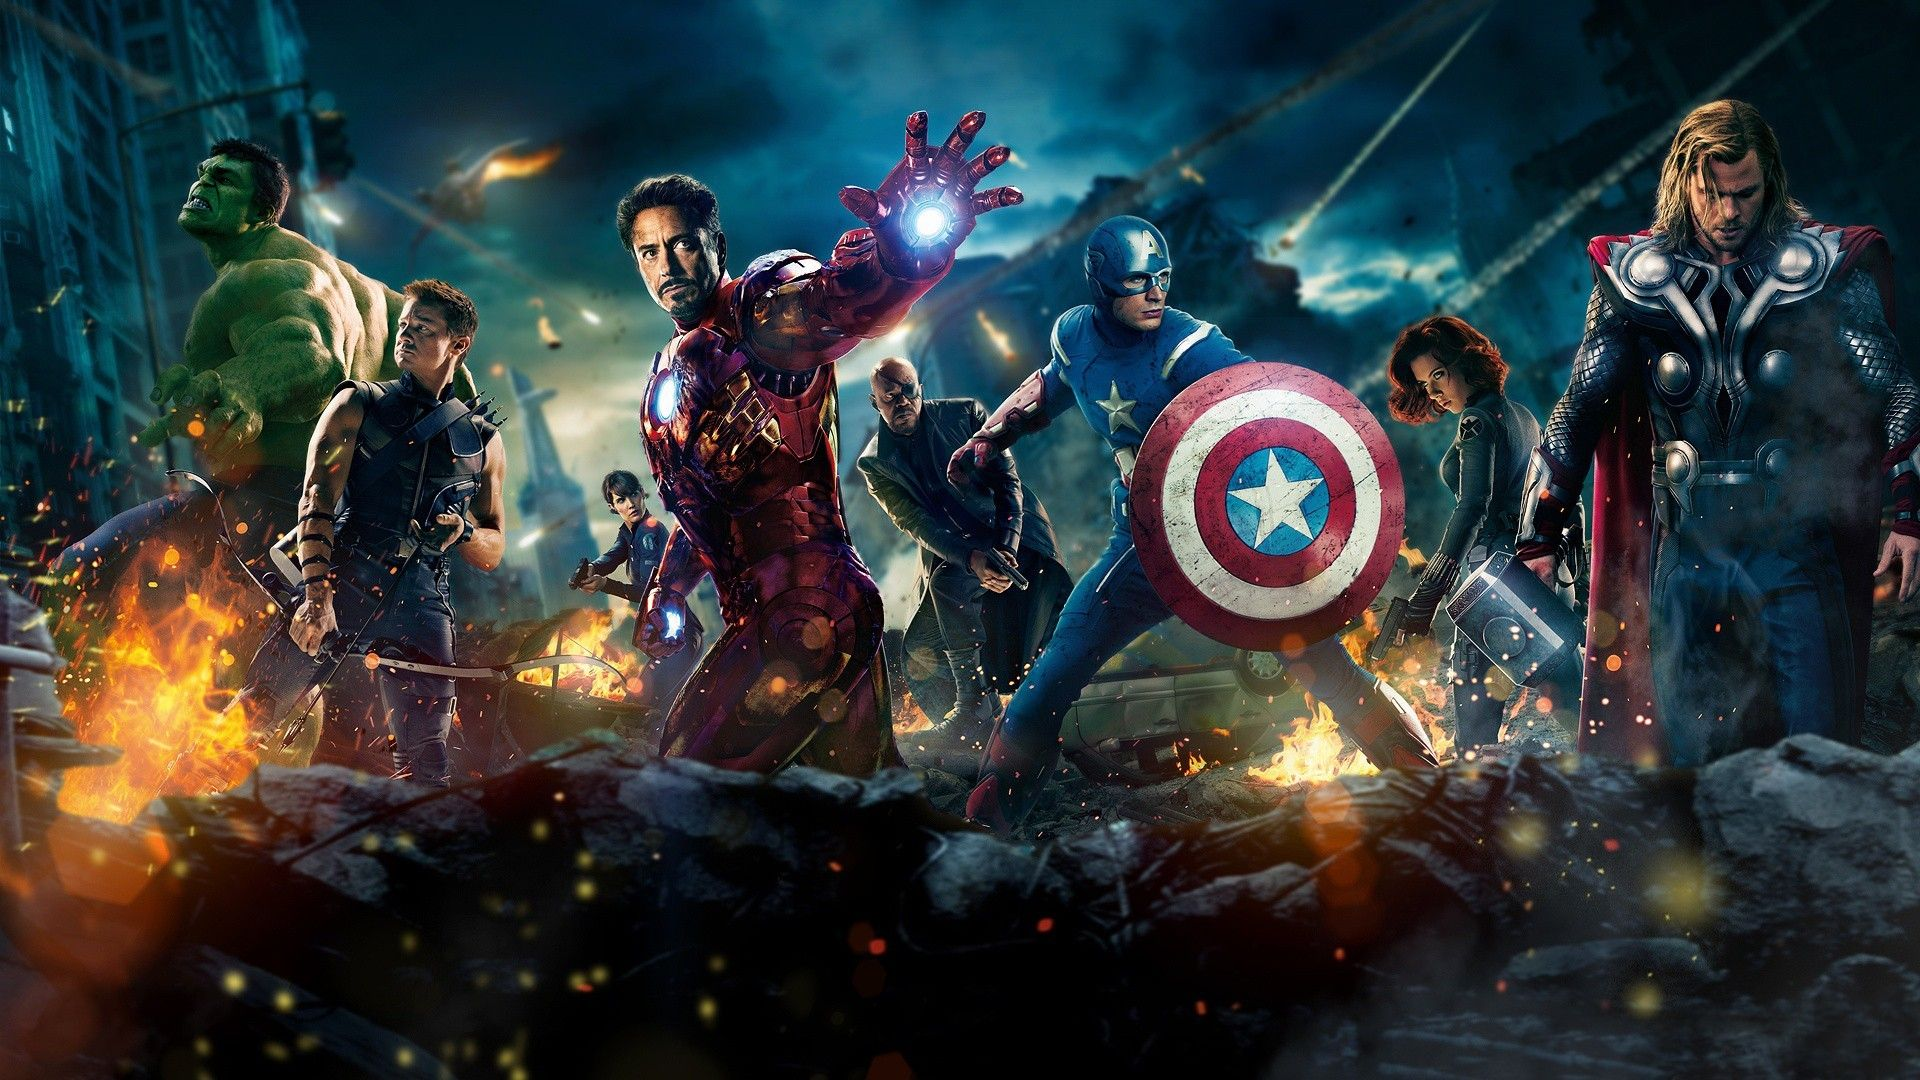 The Avengers Wallpaper Movie Hd 1080p Jpg 1920 1080 With Images